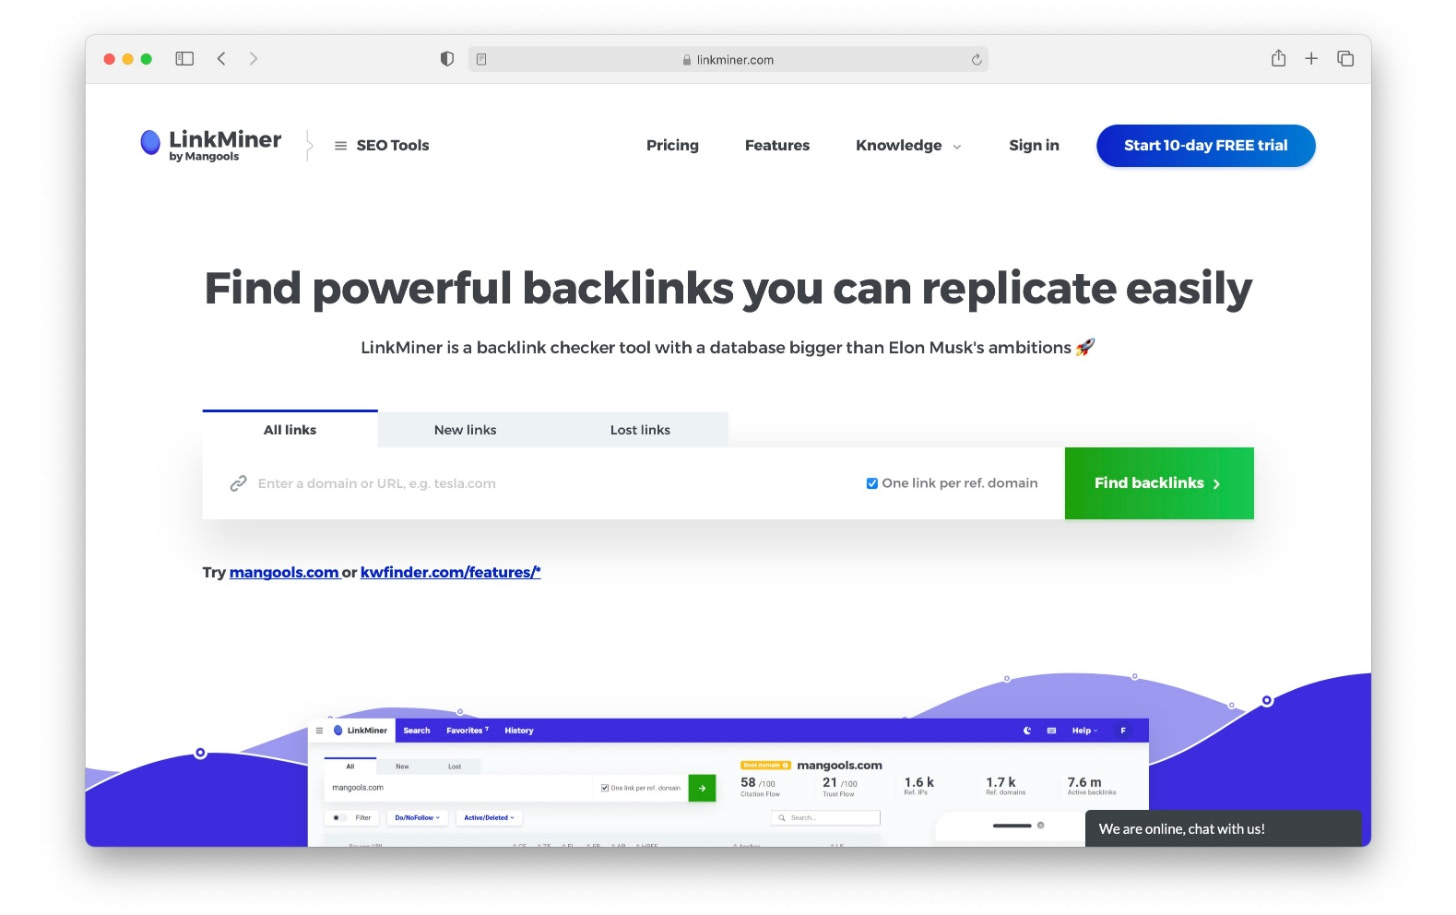 Linkminer